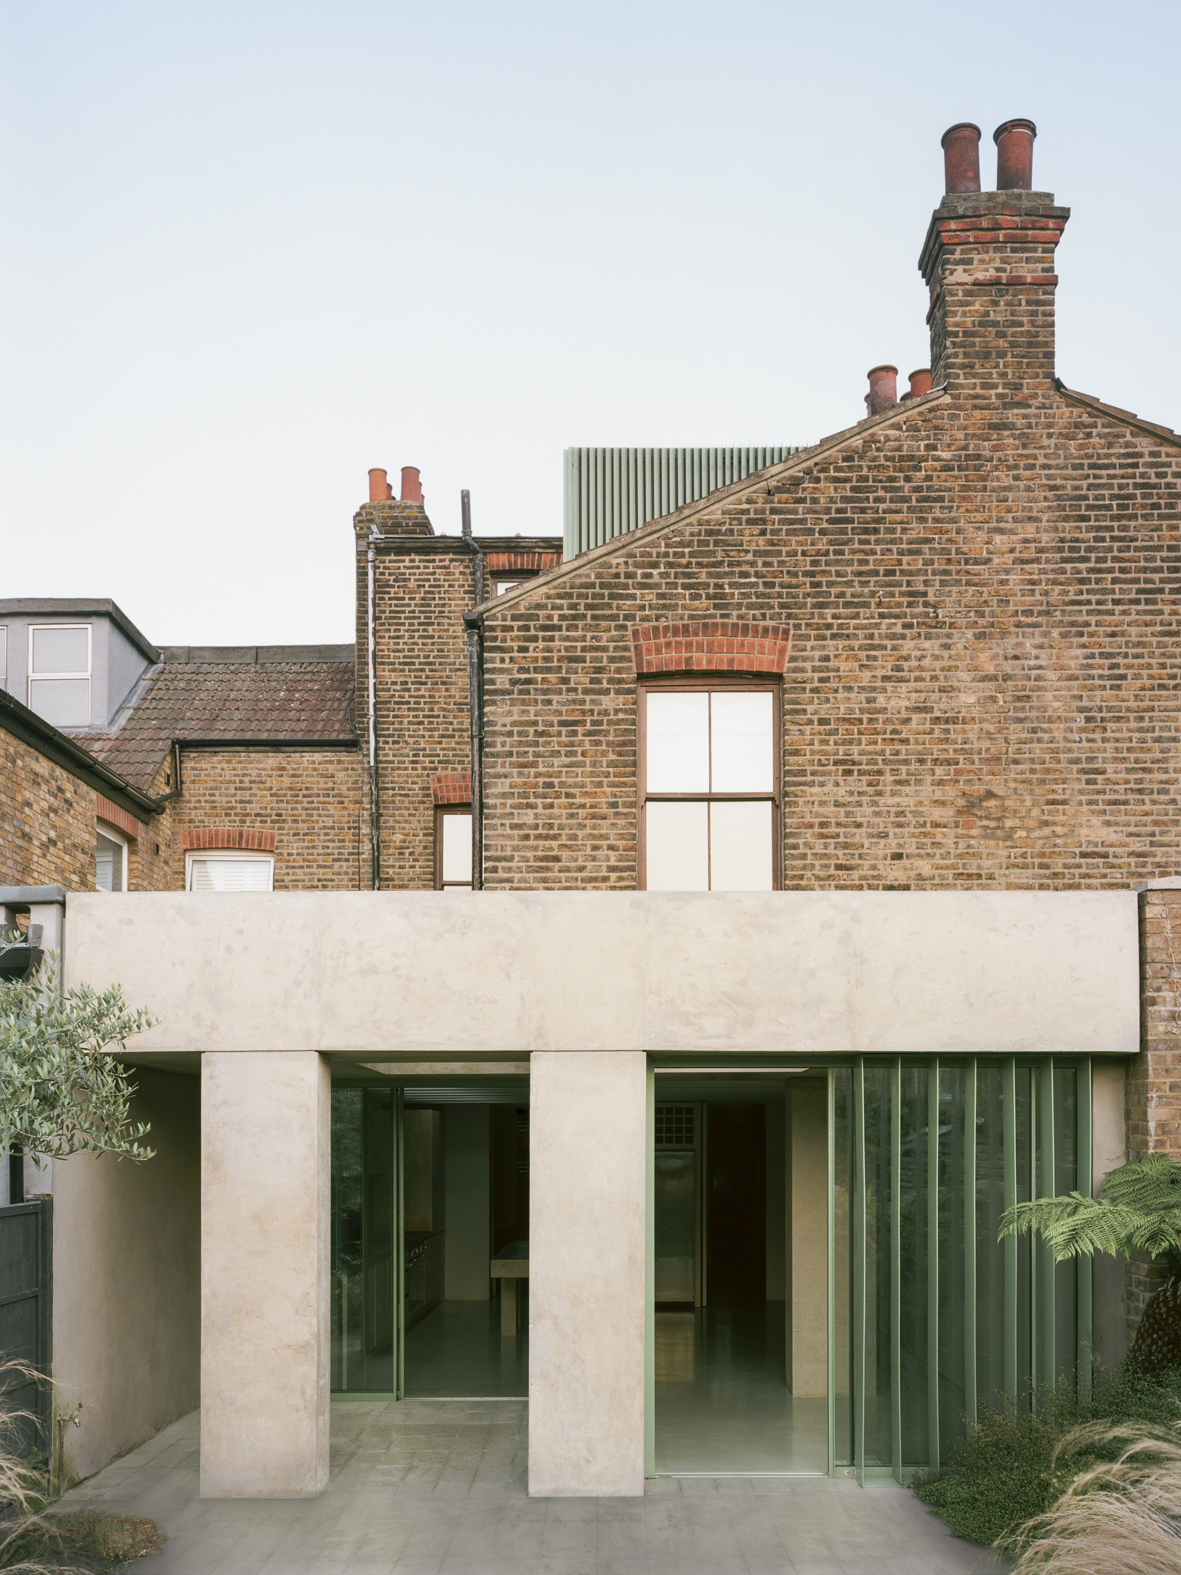 Private Residence, Acton, London